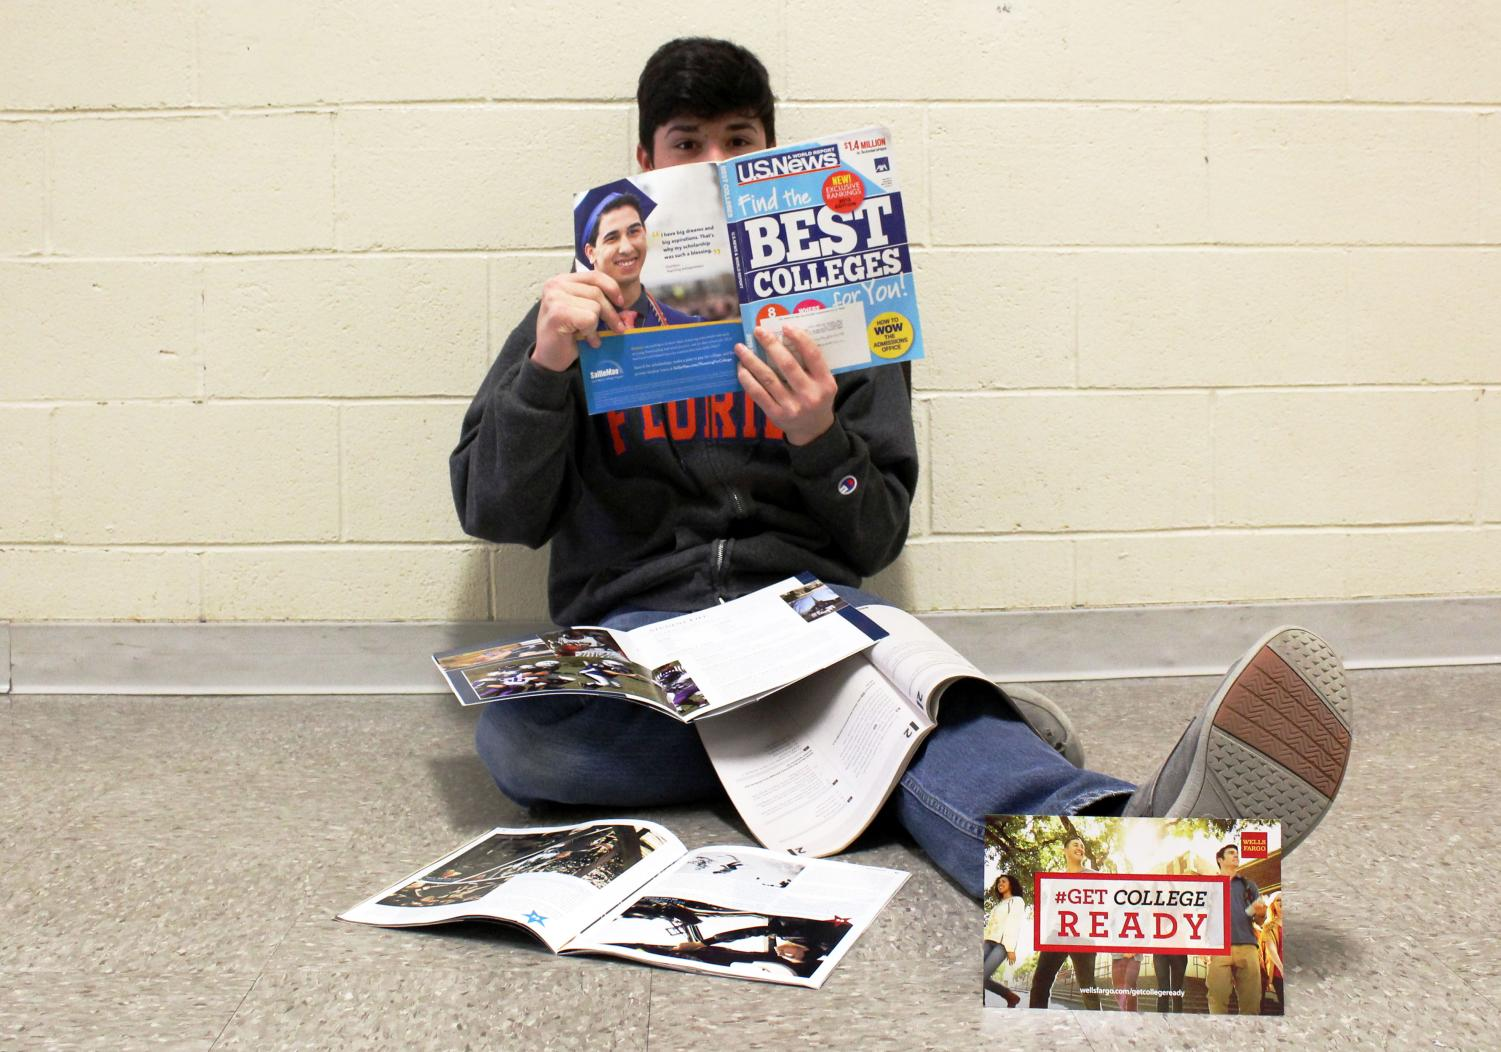 Ben Brosius researching different college options.